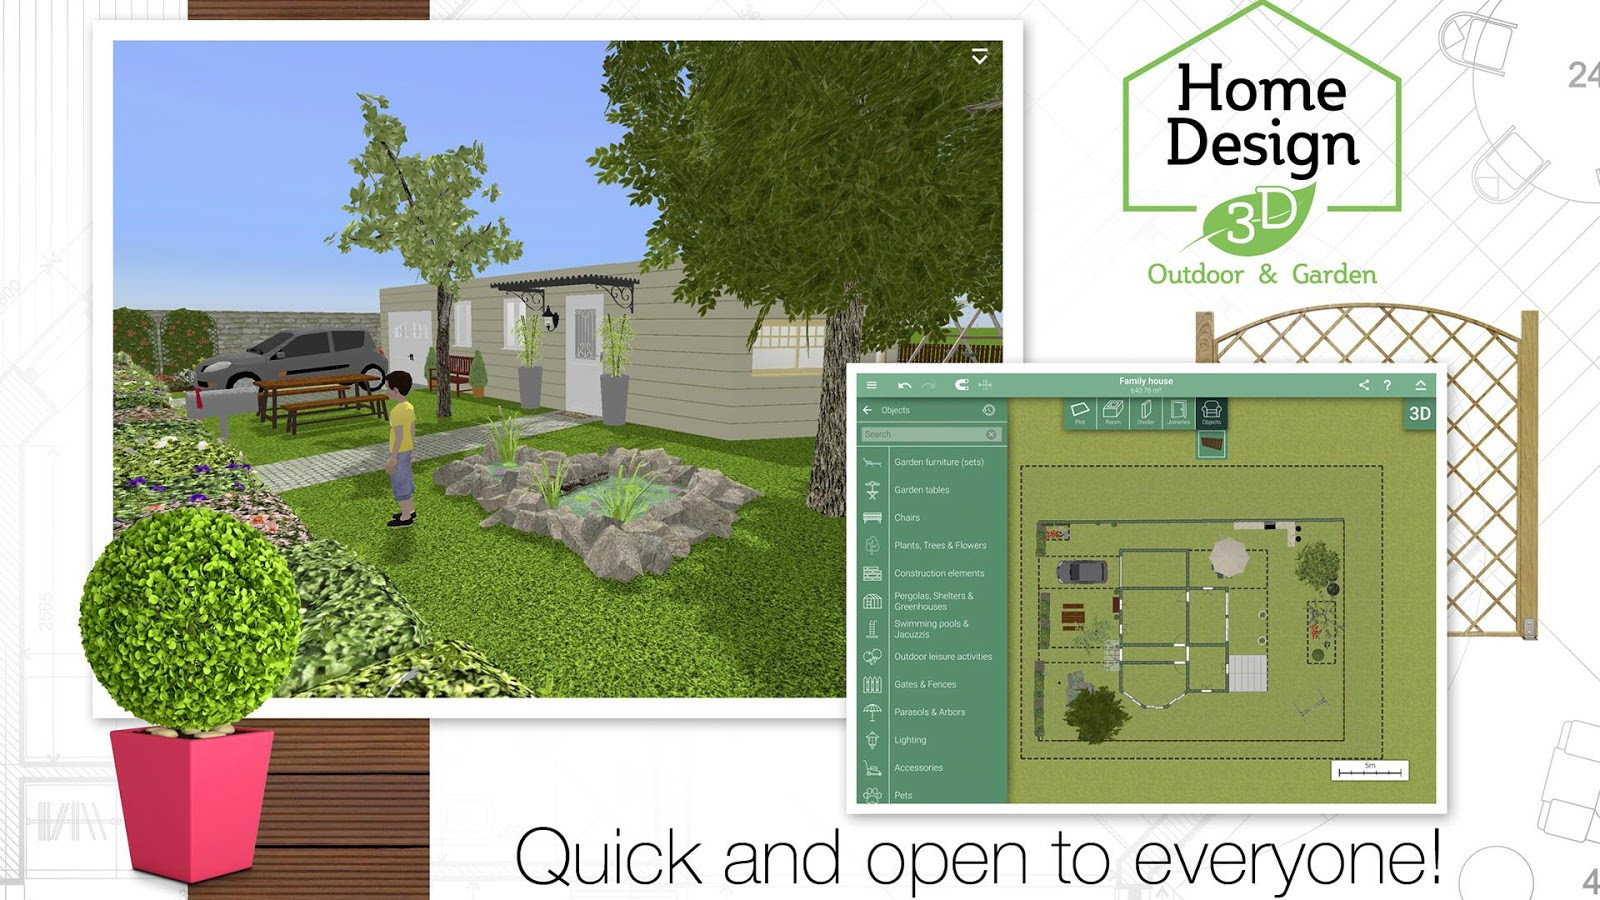 Best ideas about Backyard Design App . Save or Pin Home Design 3D Outdoor Garden Android Apps on Google Play Now.